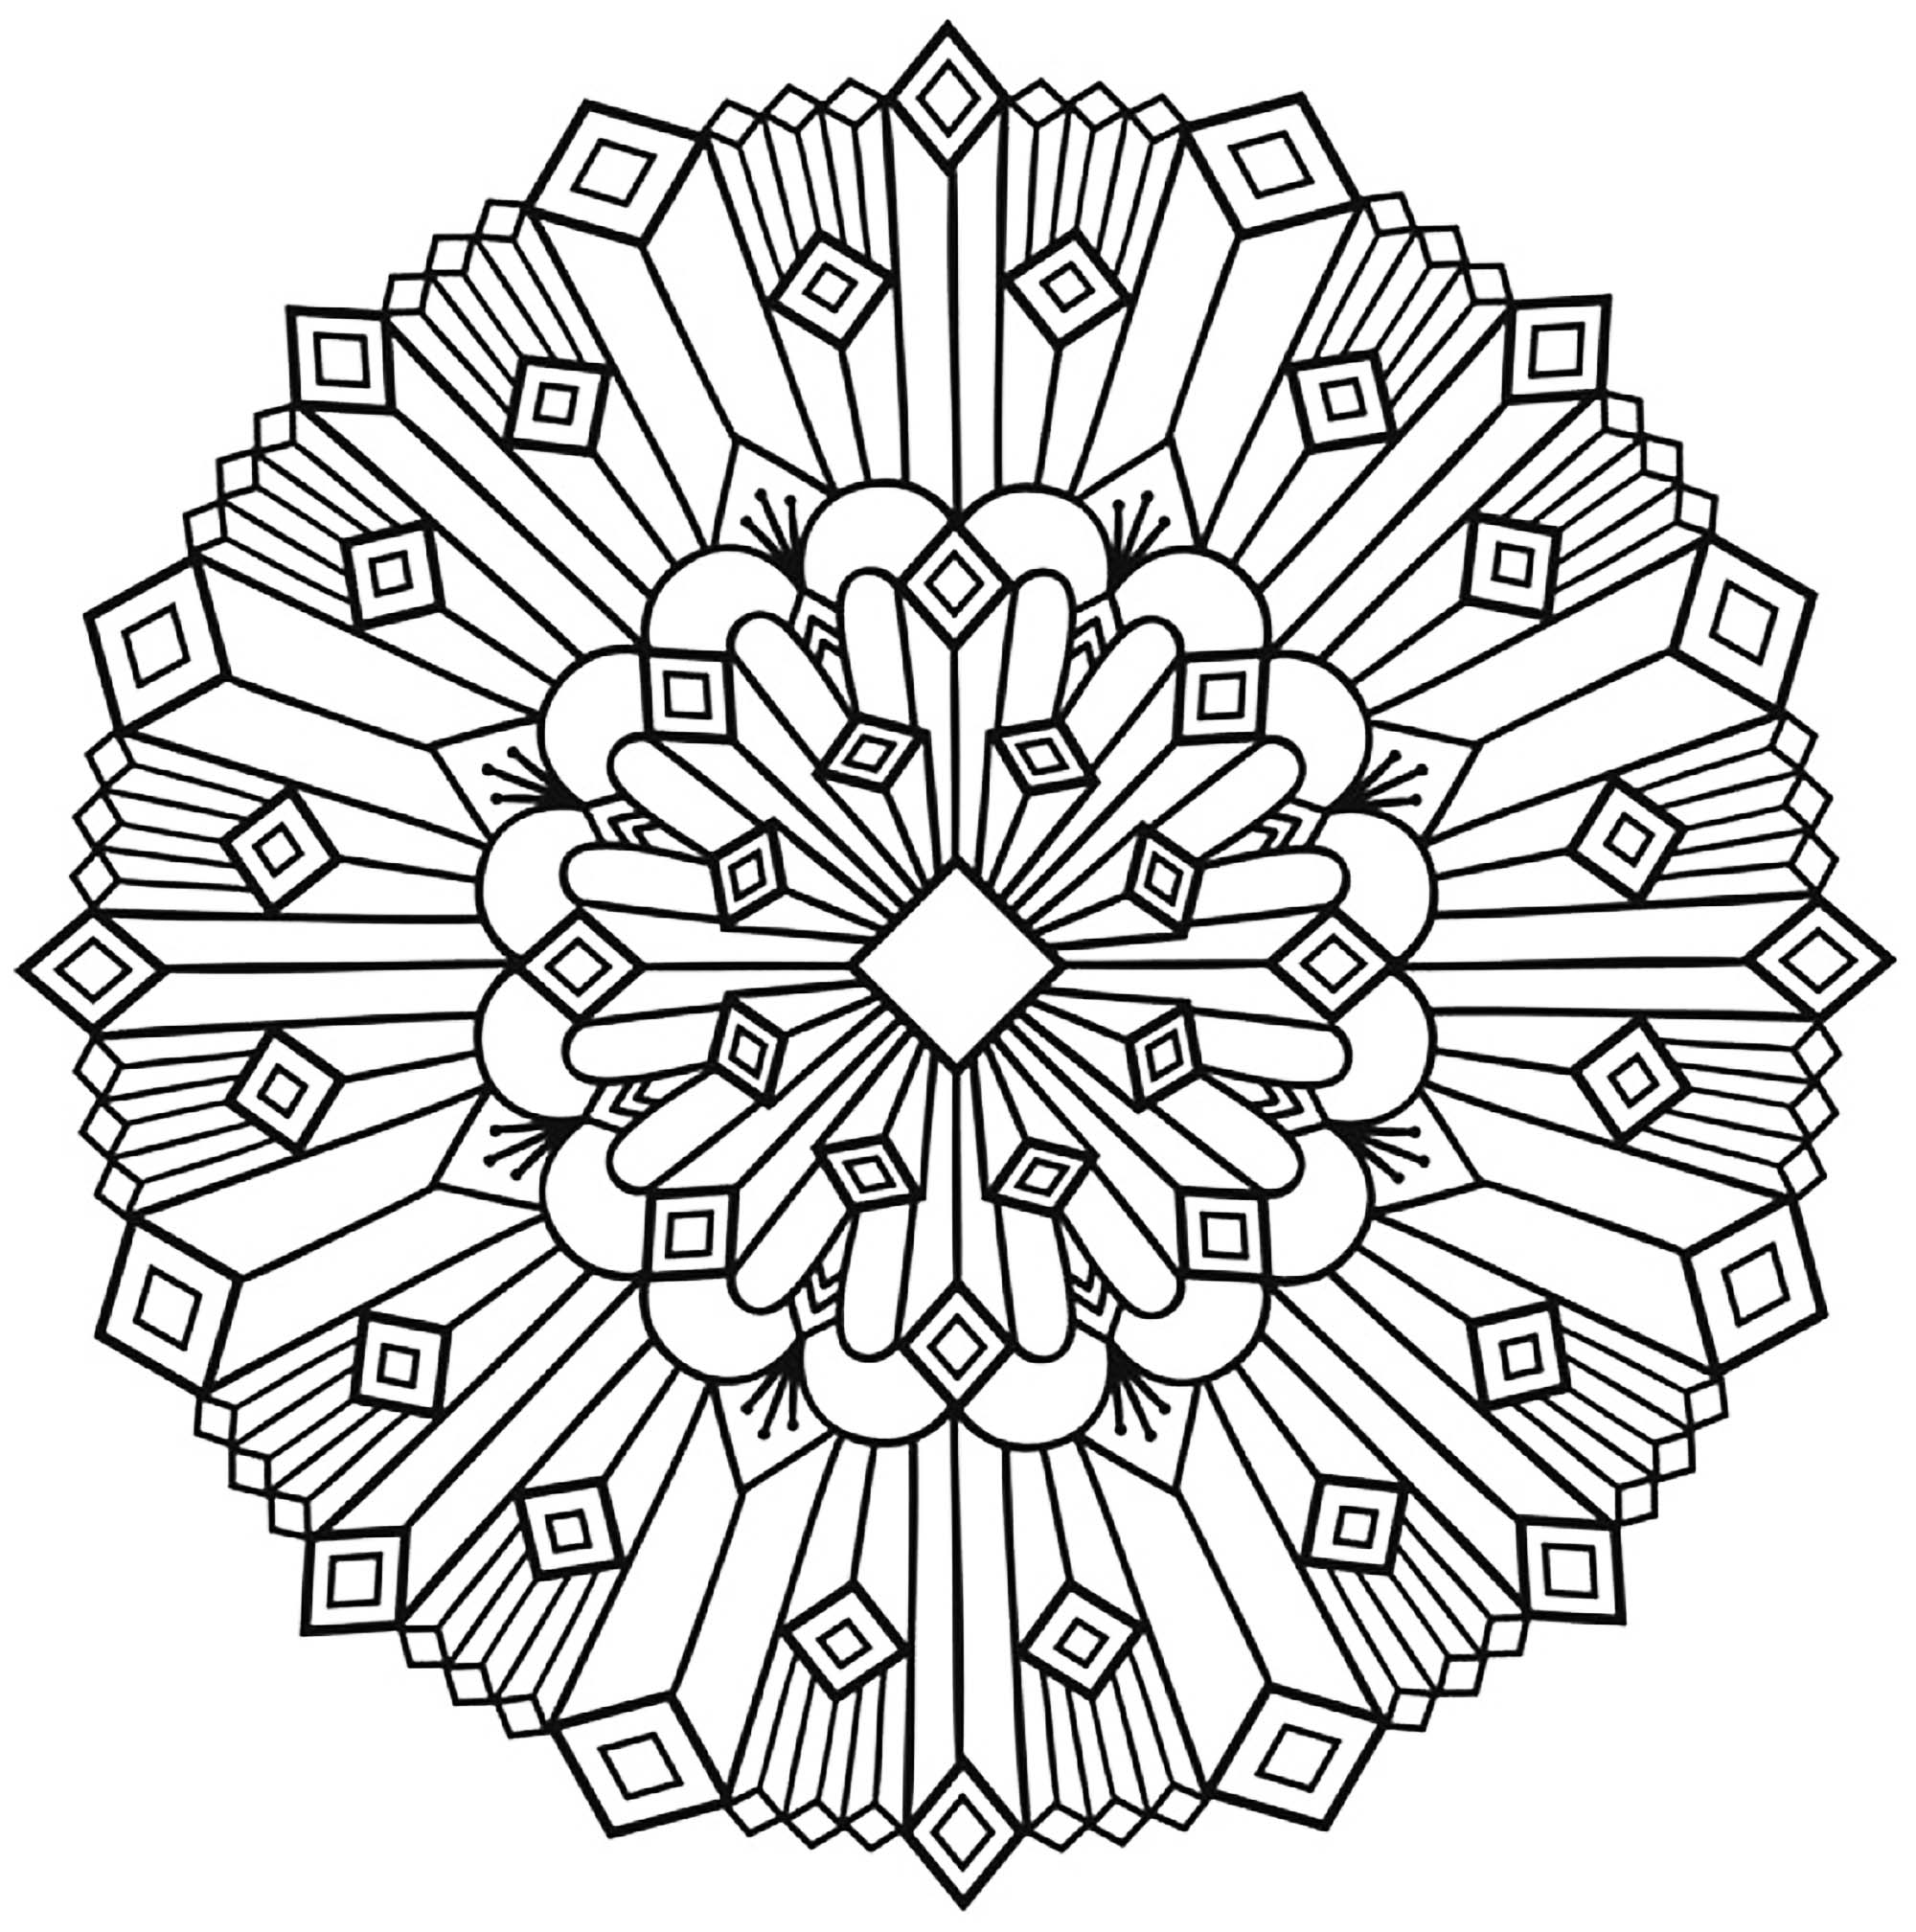 simple mandalas to color simple mandala 19 mandalas coloring pages for kids to color simple to mandalas